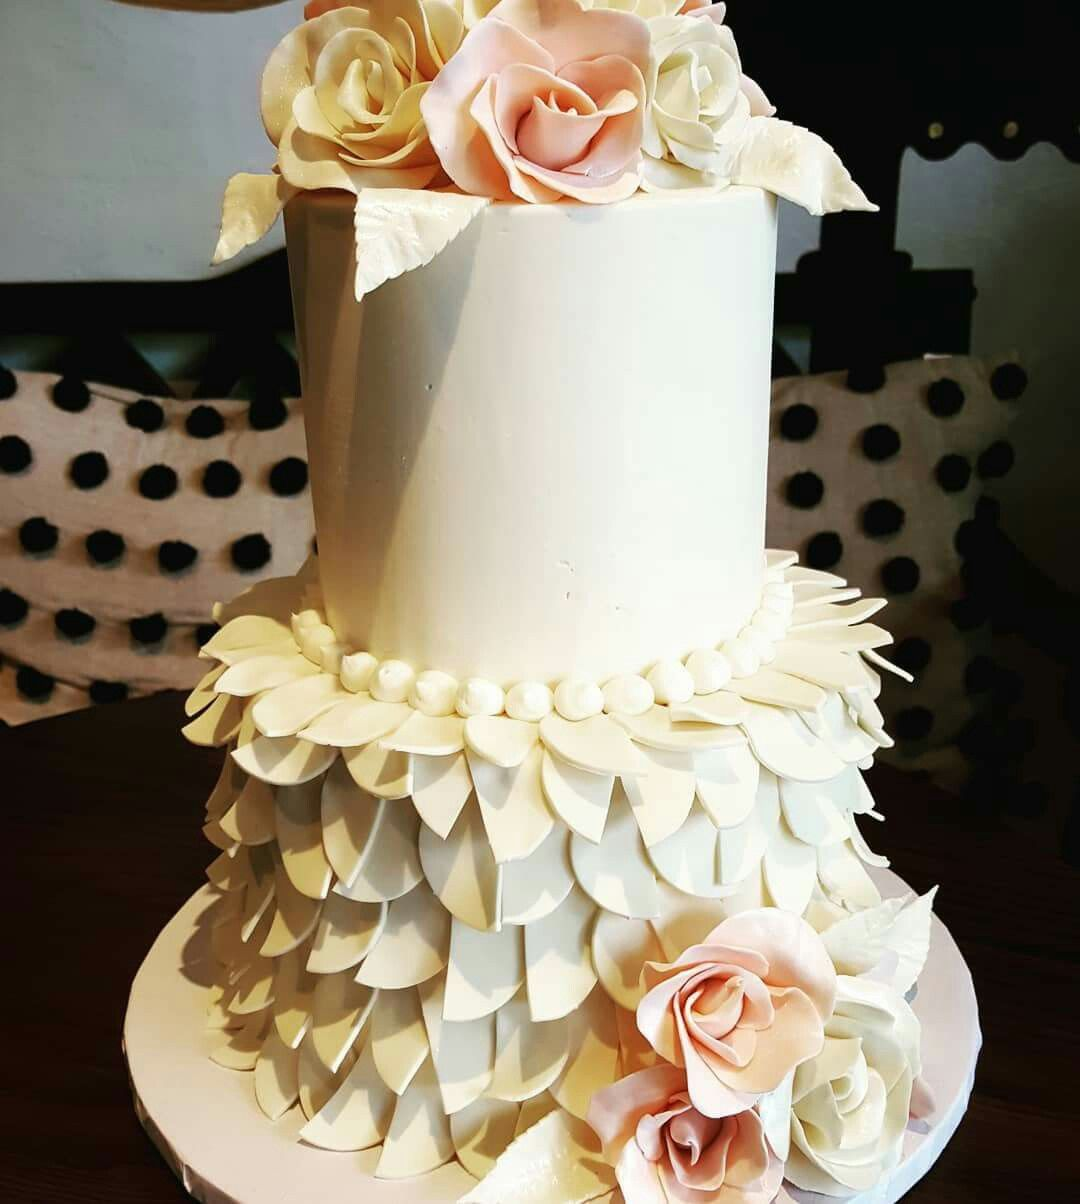 Homemade wedding decoration ideas  CuteLittleWeddingCake FabulousCakeGirls FernandaIsAWESOME